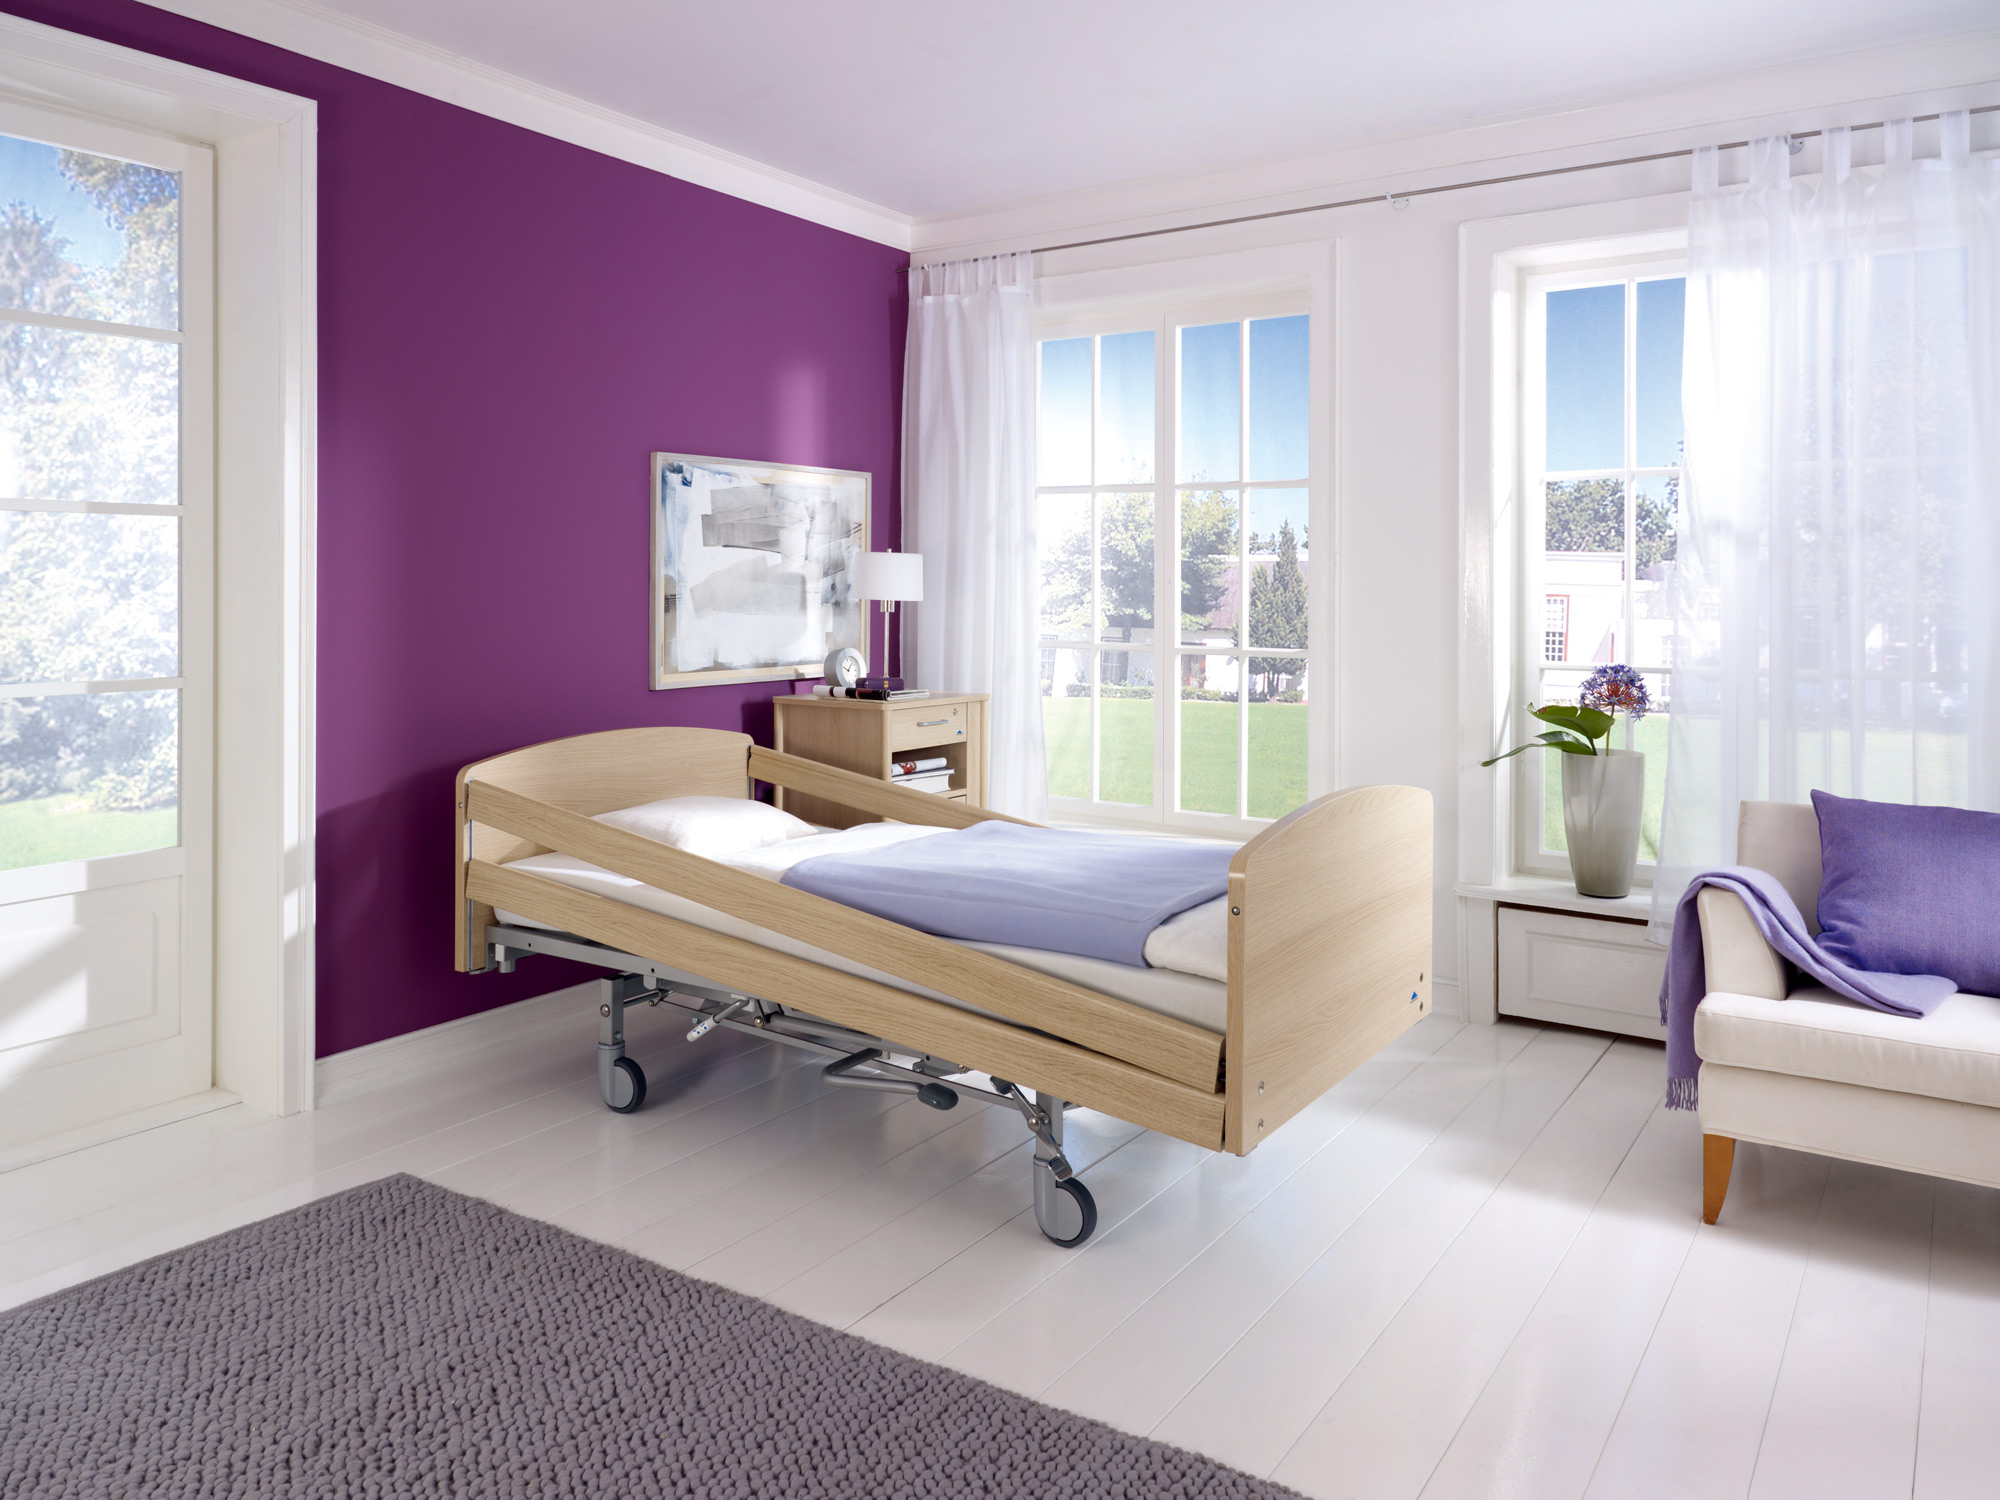 Diagonally raised safety side on the Classiko care bed